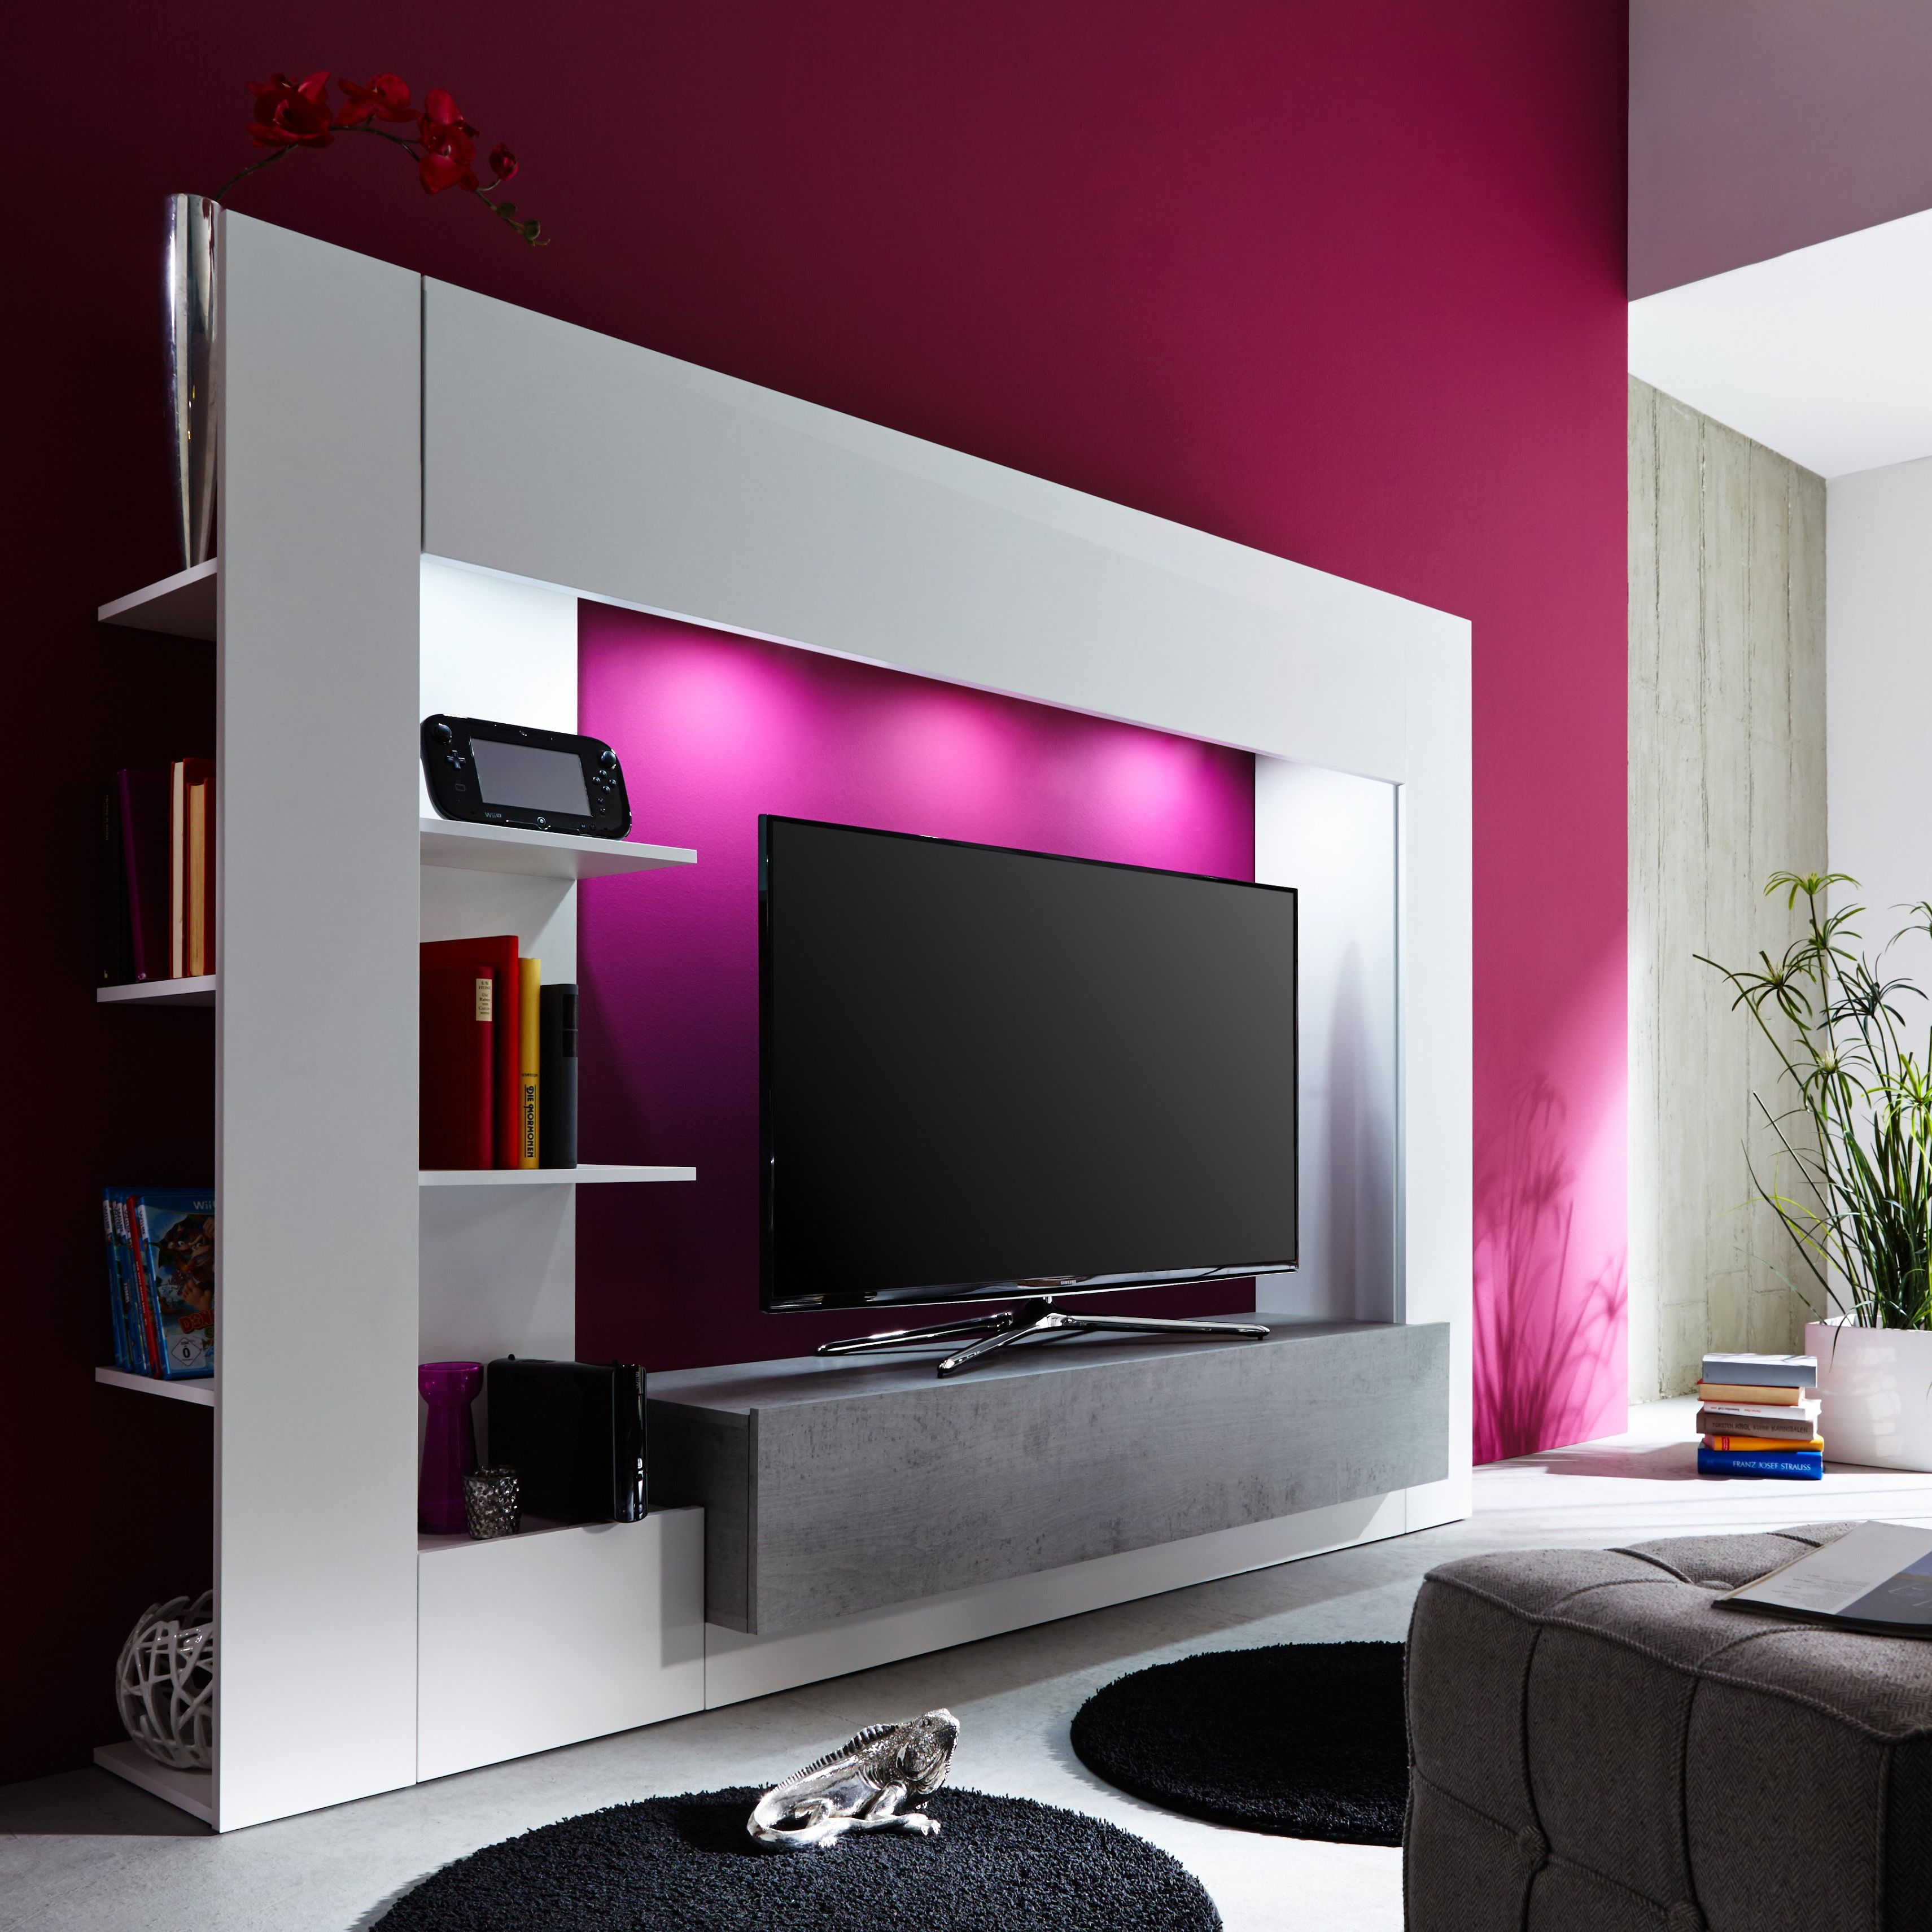 die moderne tv wohnwand harry bietet viel stauraum f r dvds b cher und deko das klare design in. Black Bedroom Furniture Sets. Home Design Ideas